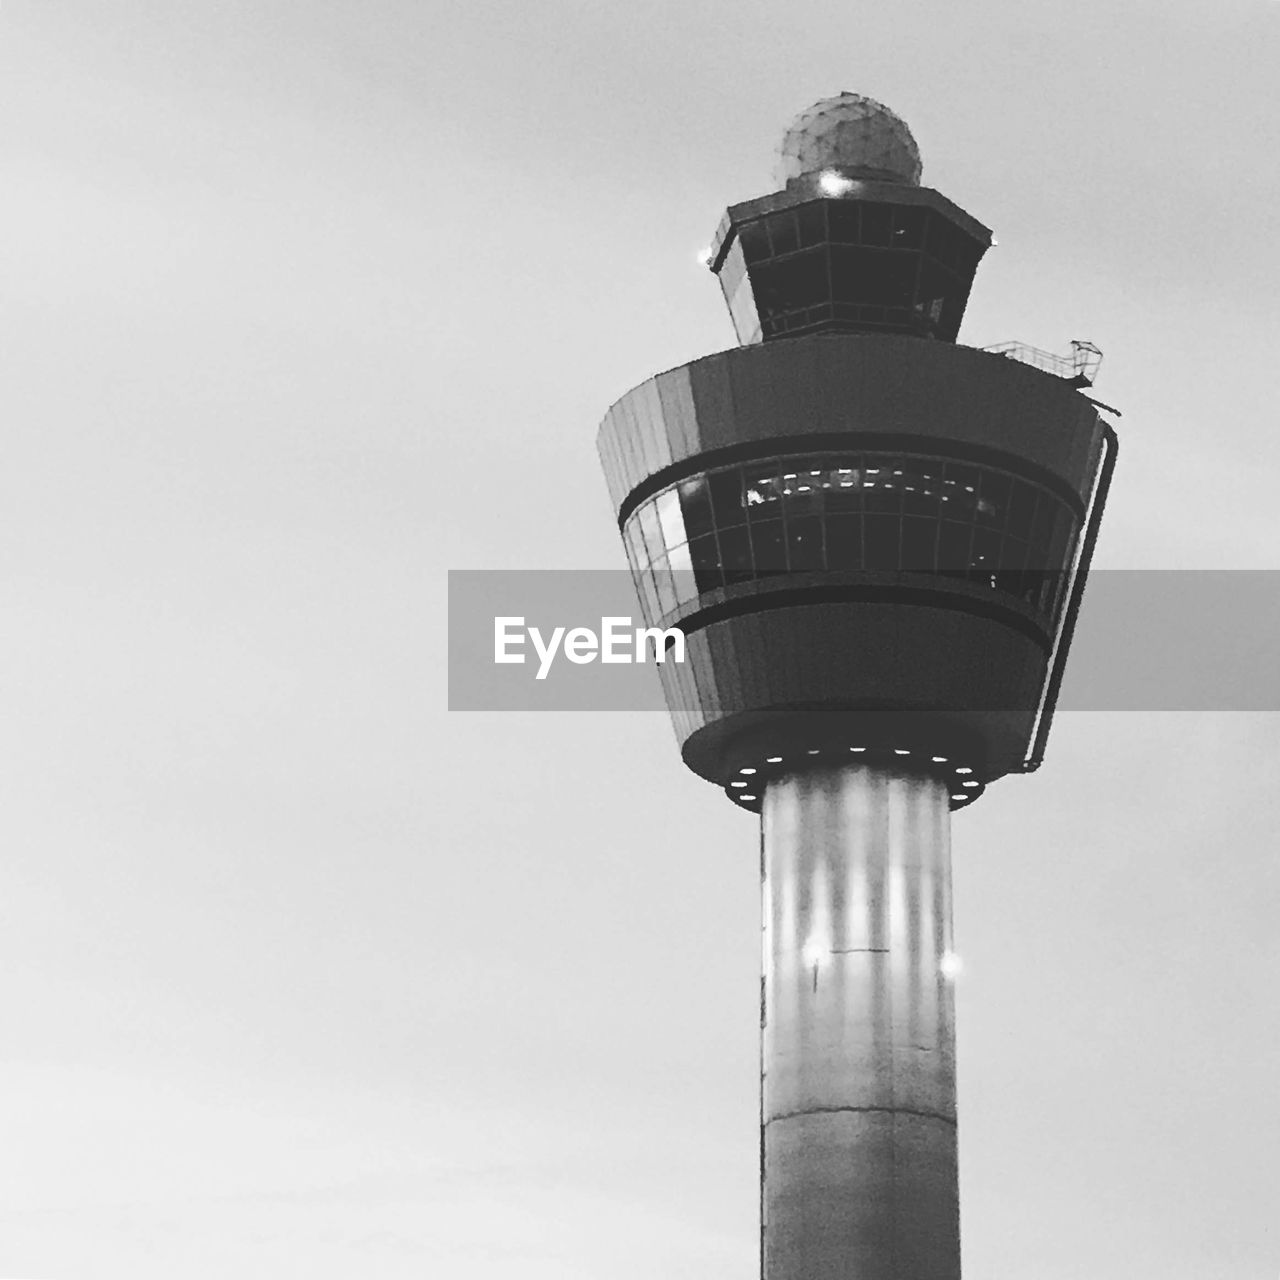 low angle view, sky, architecture, built structure, building exterior, tower, tall - high, nature, clear sky, day, lighting equipment, no people, technology, outdoors, street light, copy space, building, communication, street, skyscraper, spire, global communications